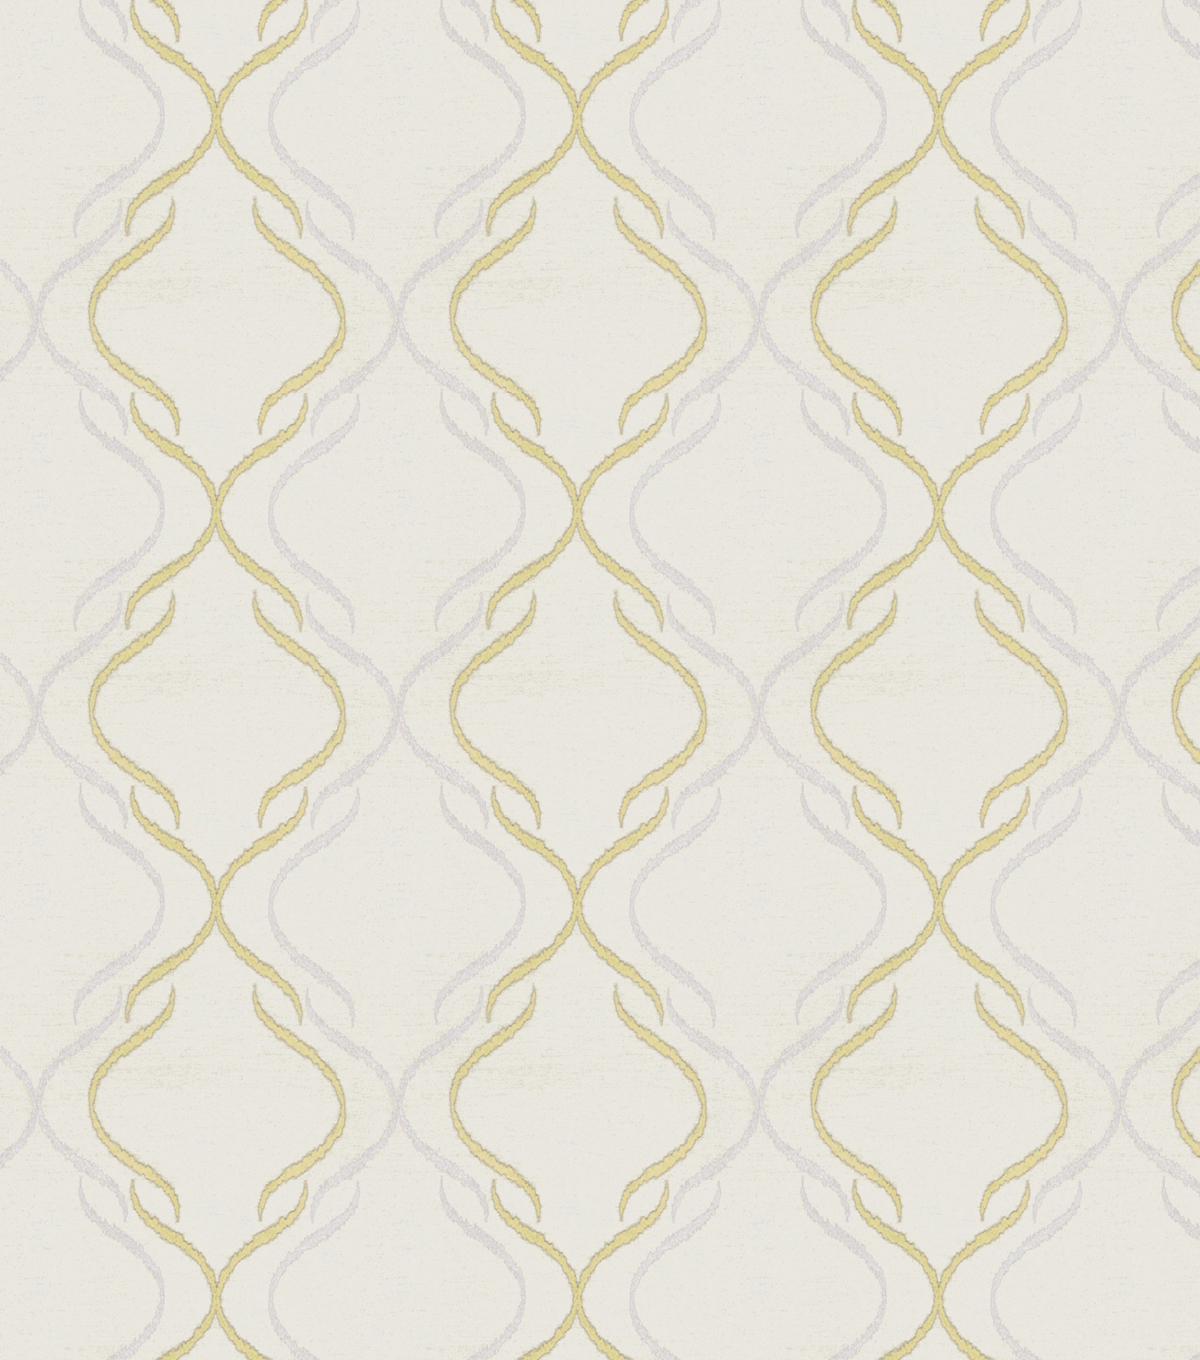 Eaton Square Sheer Fabric-Casino/Goldleaf